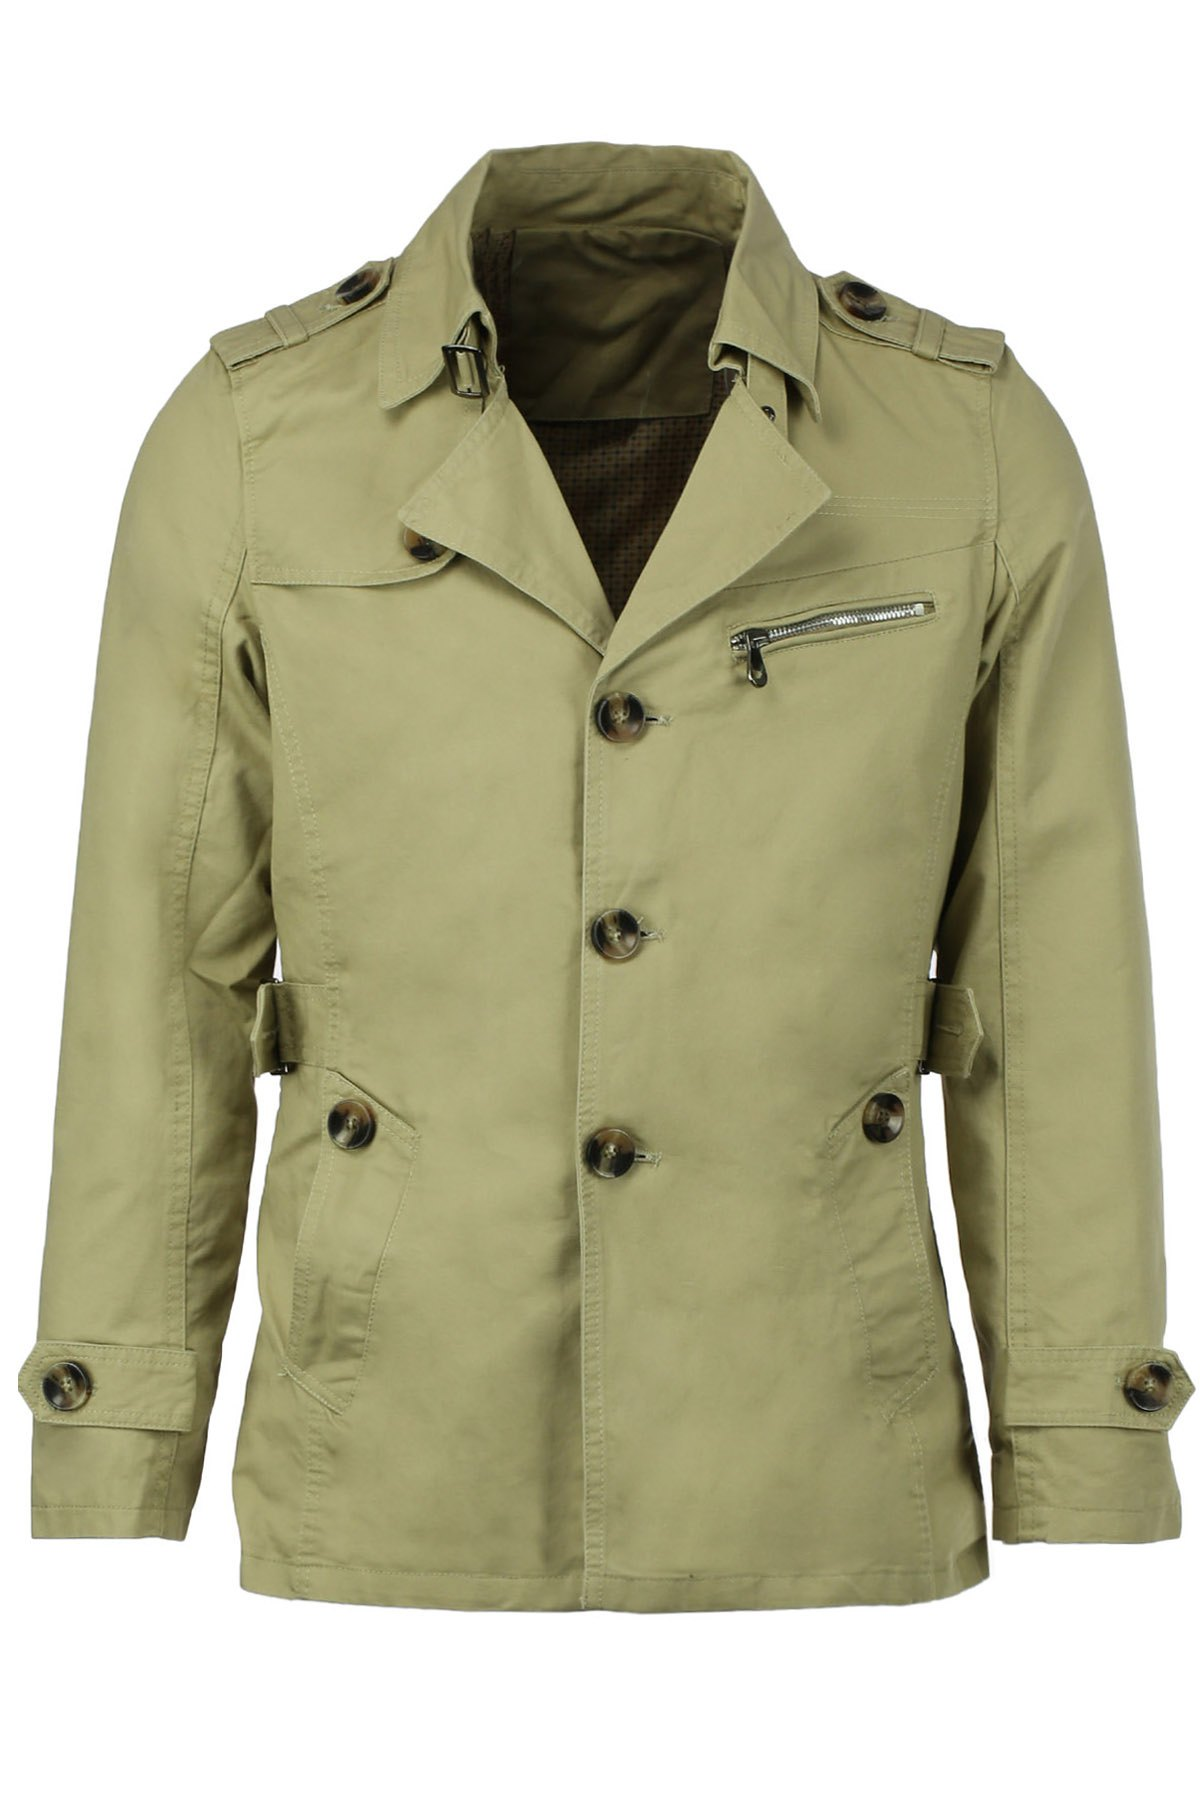 Epaulet Turn-Down Collar Single Breasted Long Sleeve Men's Trench Coat - LIGHT KHAKI M